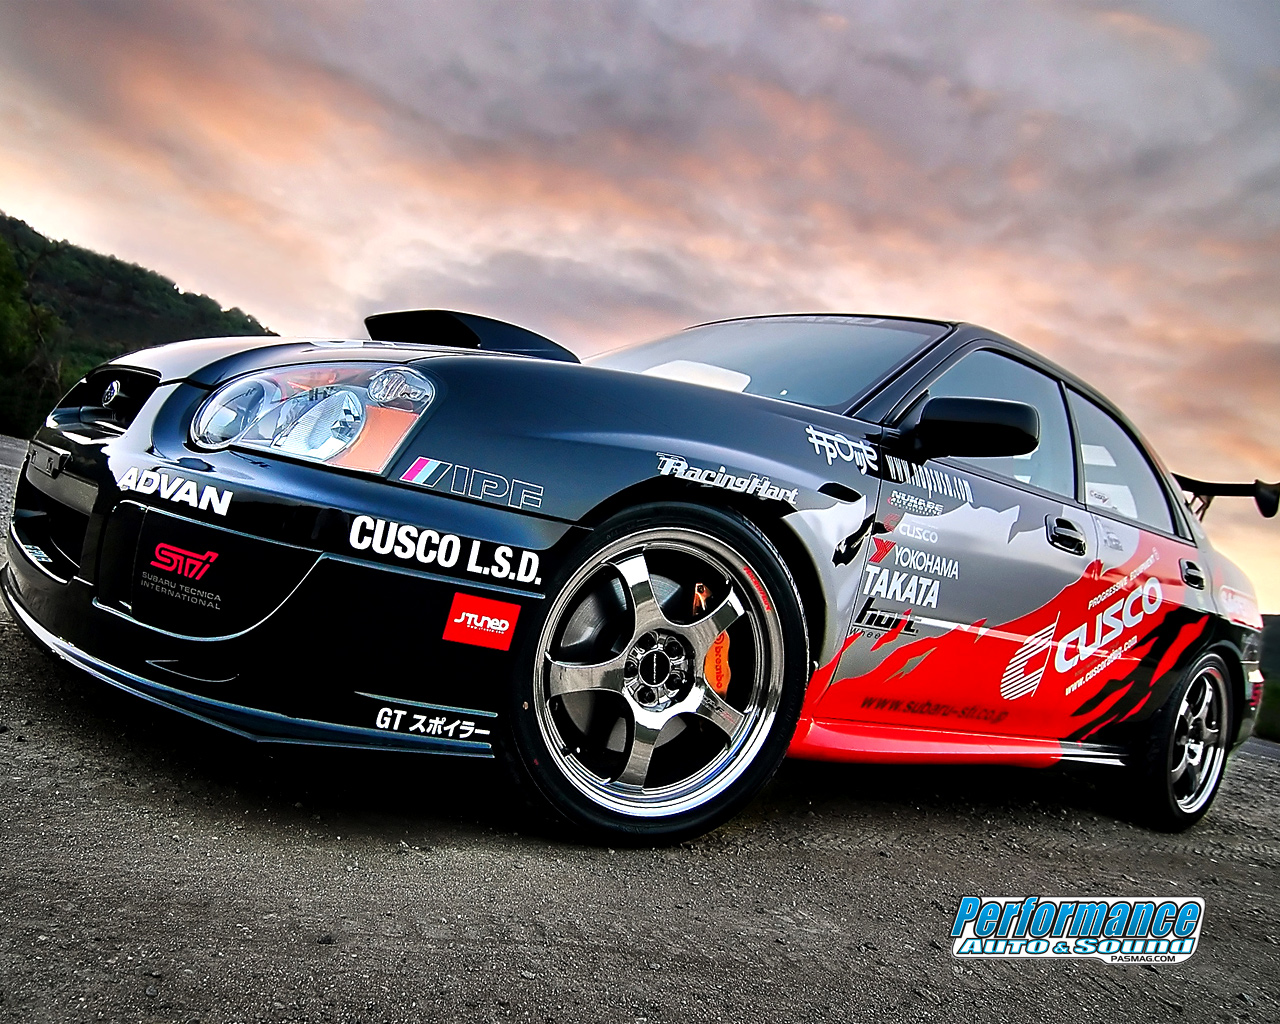 Voitures tuning page 6 - Voiture de tuning ...